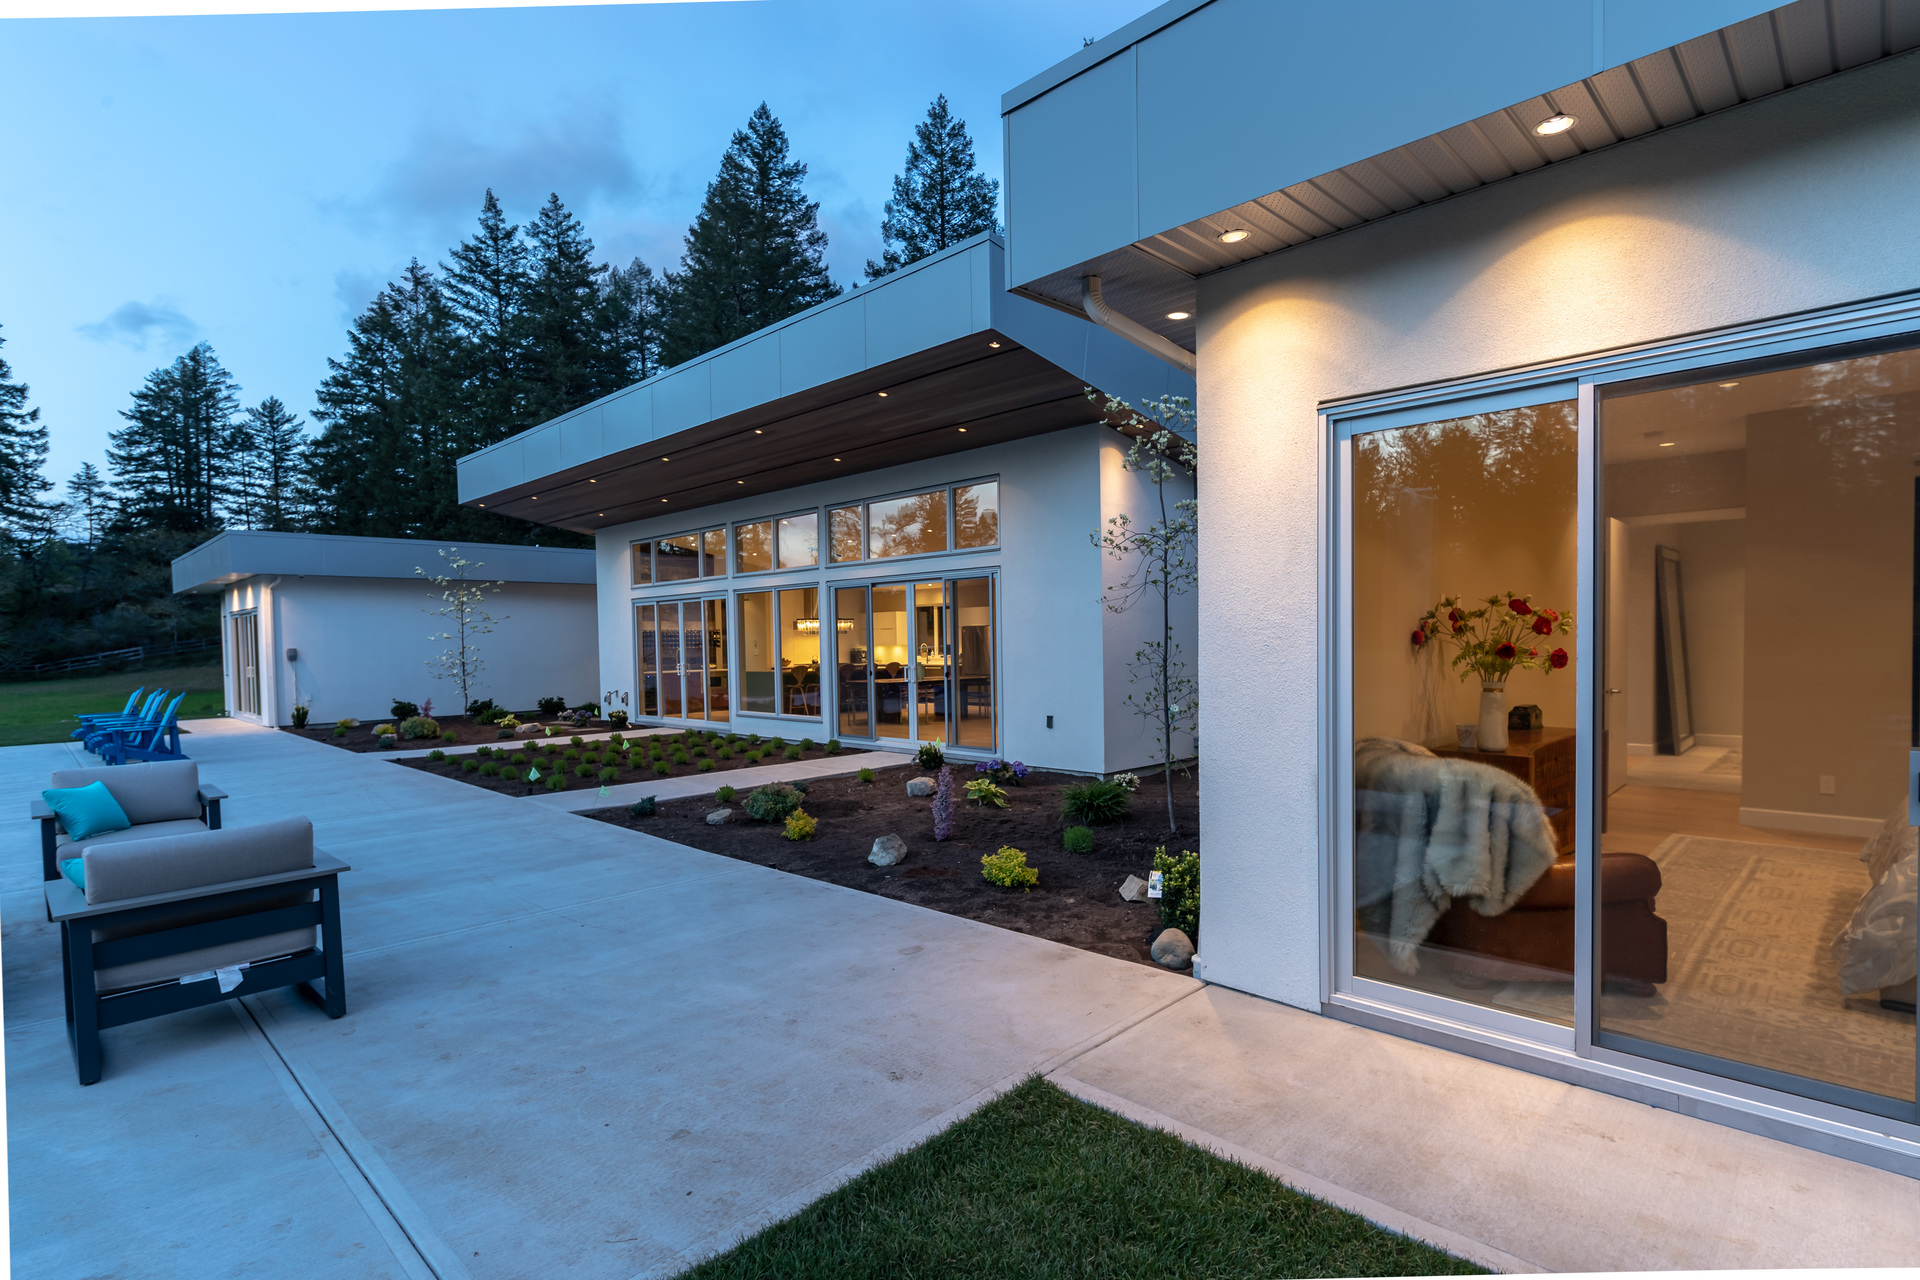 Exterior Lighting On The Westerly Patio at 5101 Jagtar's Way, Victoria, Vancouver Island,